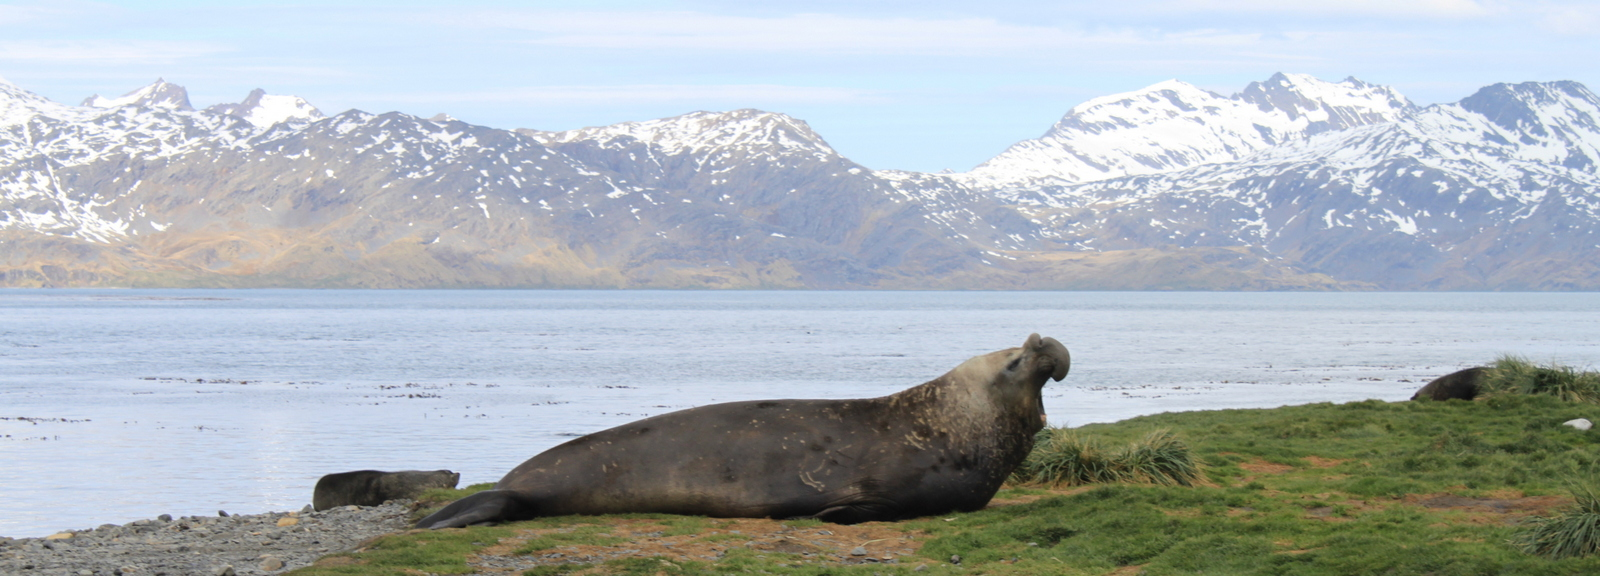 South Georgia, Grytviken, Elephant Seal